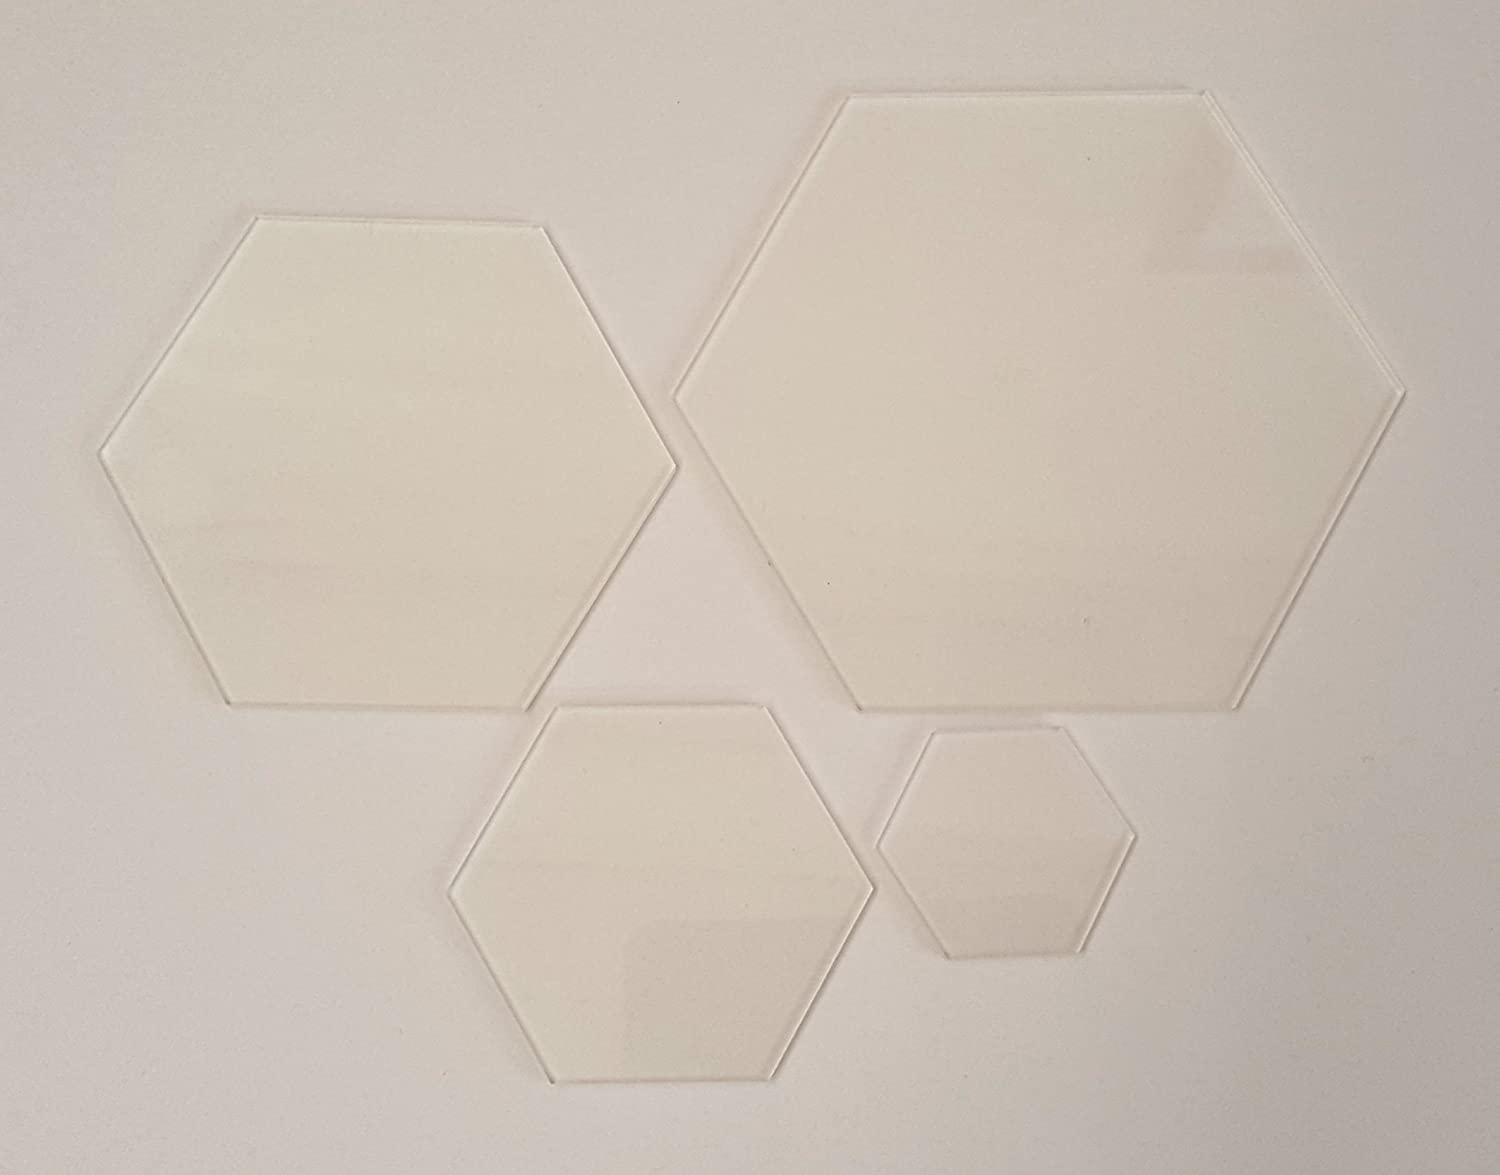 New 4 Hexagon Patchwork Templates 3mm Clear Acrylic Quilting Ruler Memories & Gifts Ltd